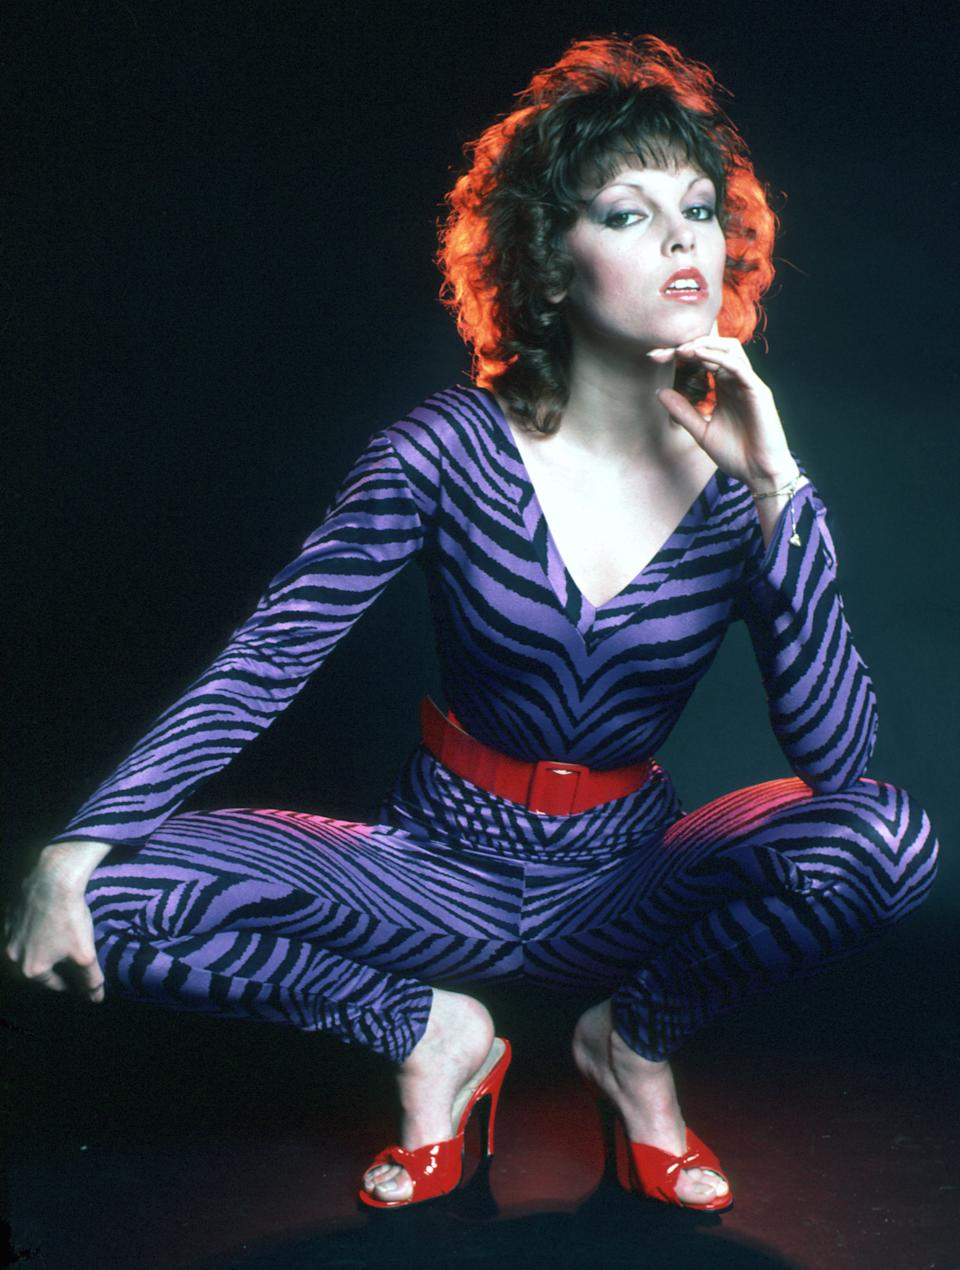 Pat Benatar poses for a portrait in November, 1979 in Los Angeles, California. (Photo: Michael Ochs Archives/Getty Images)